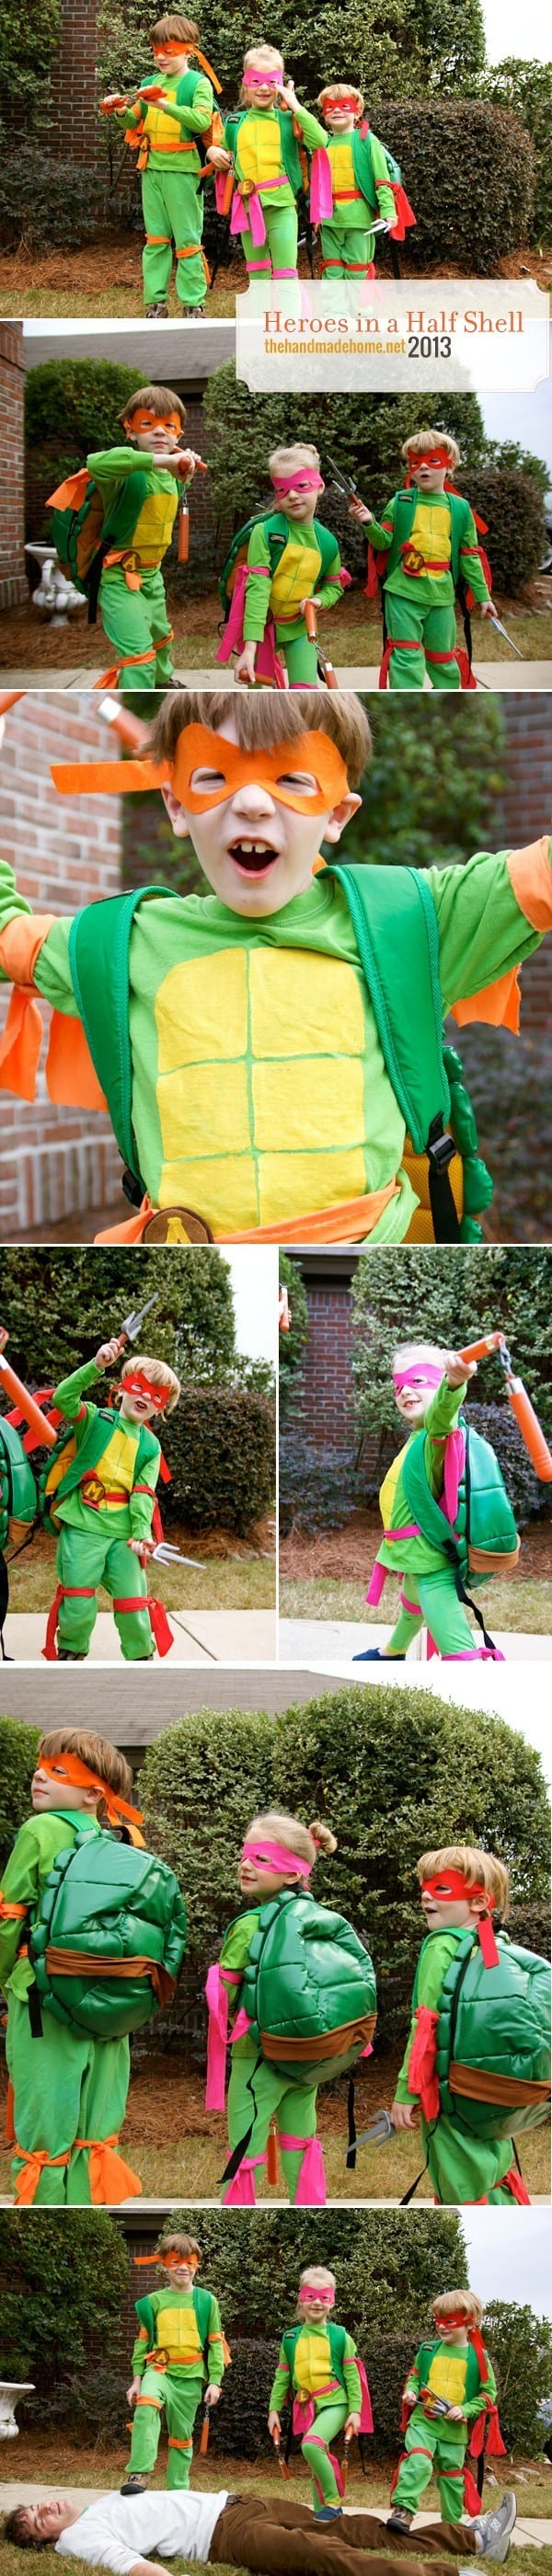 teenage_mutant_ninja_turtles_costumes